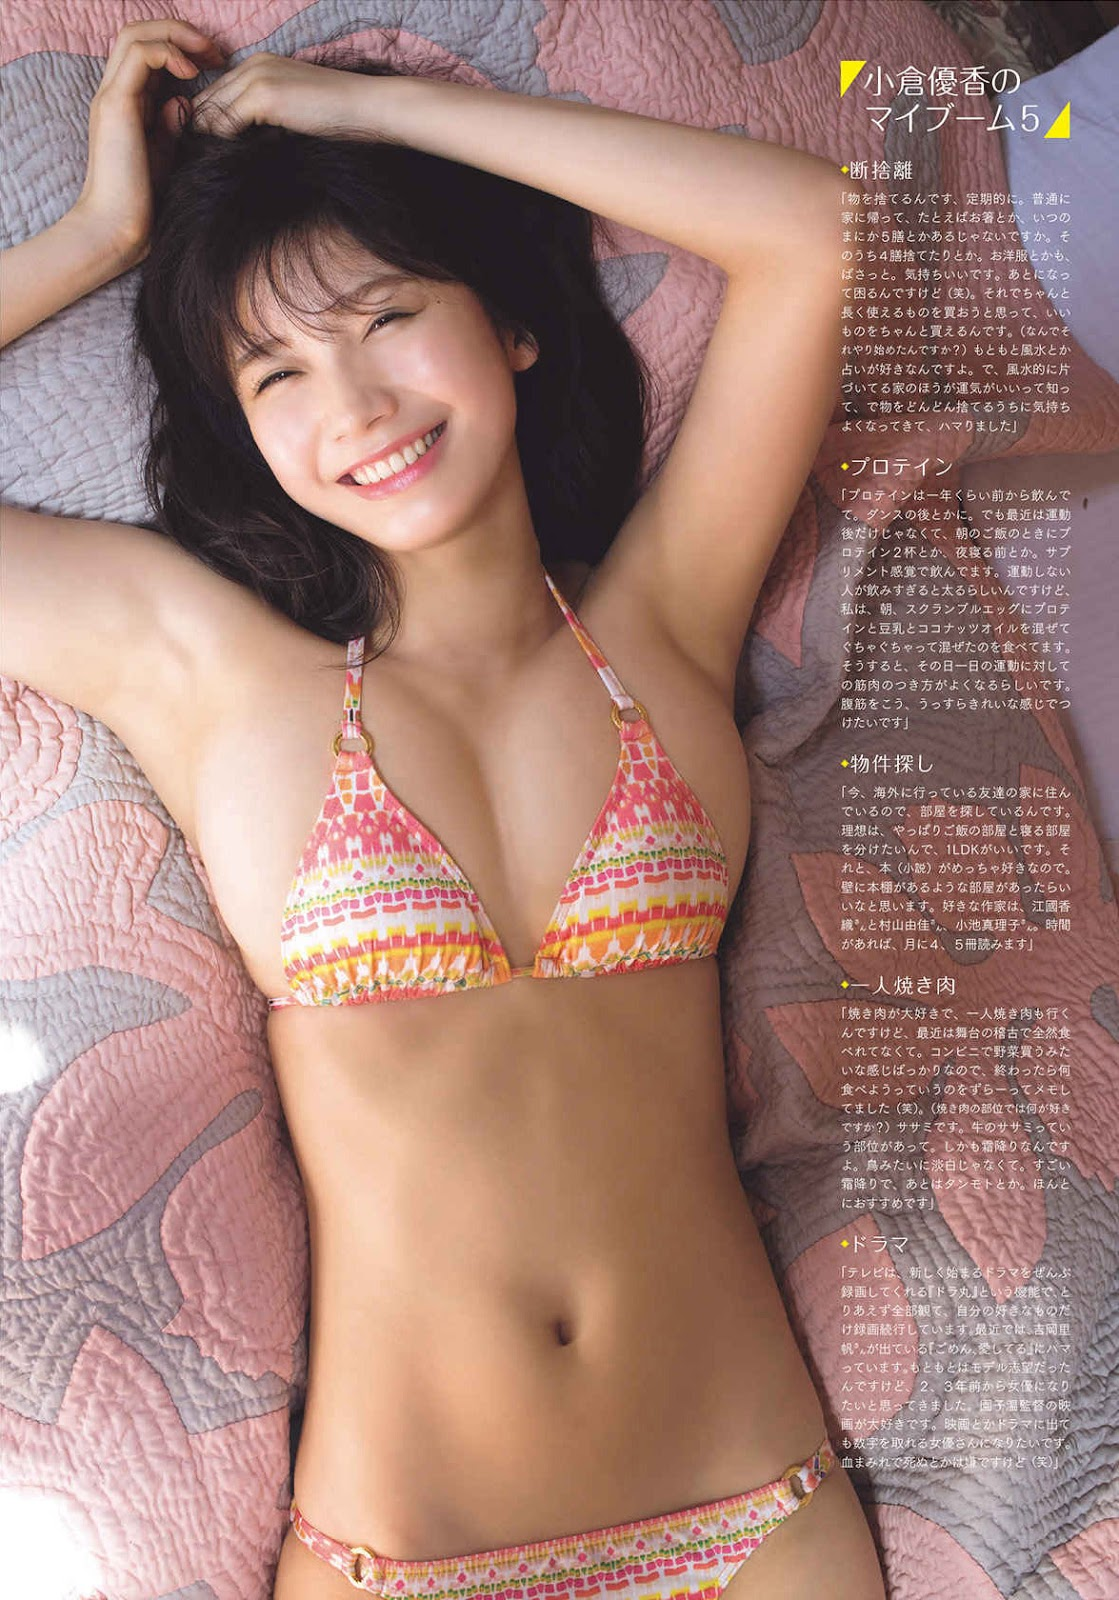 Yuka Ogura 小倉優香, FLASH Special Gravure BEST 2017 Mid-Summer